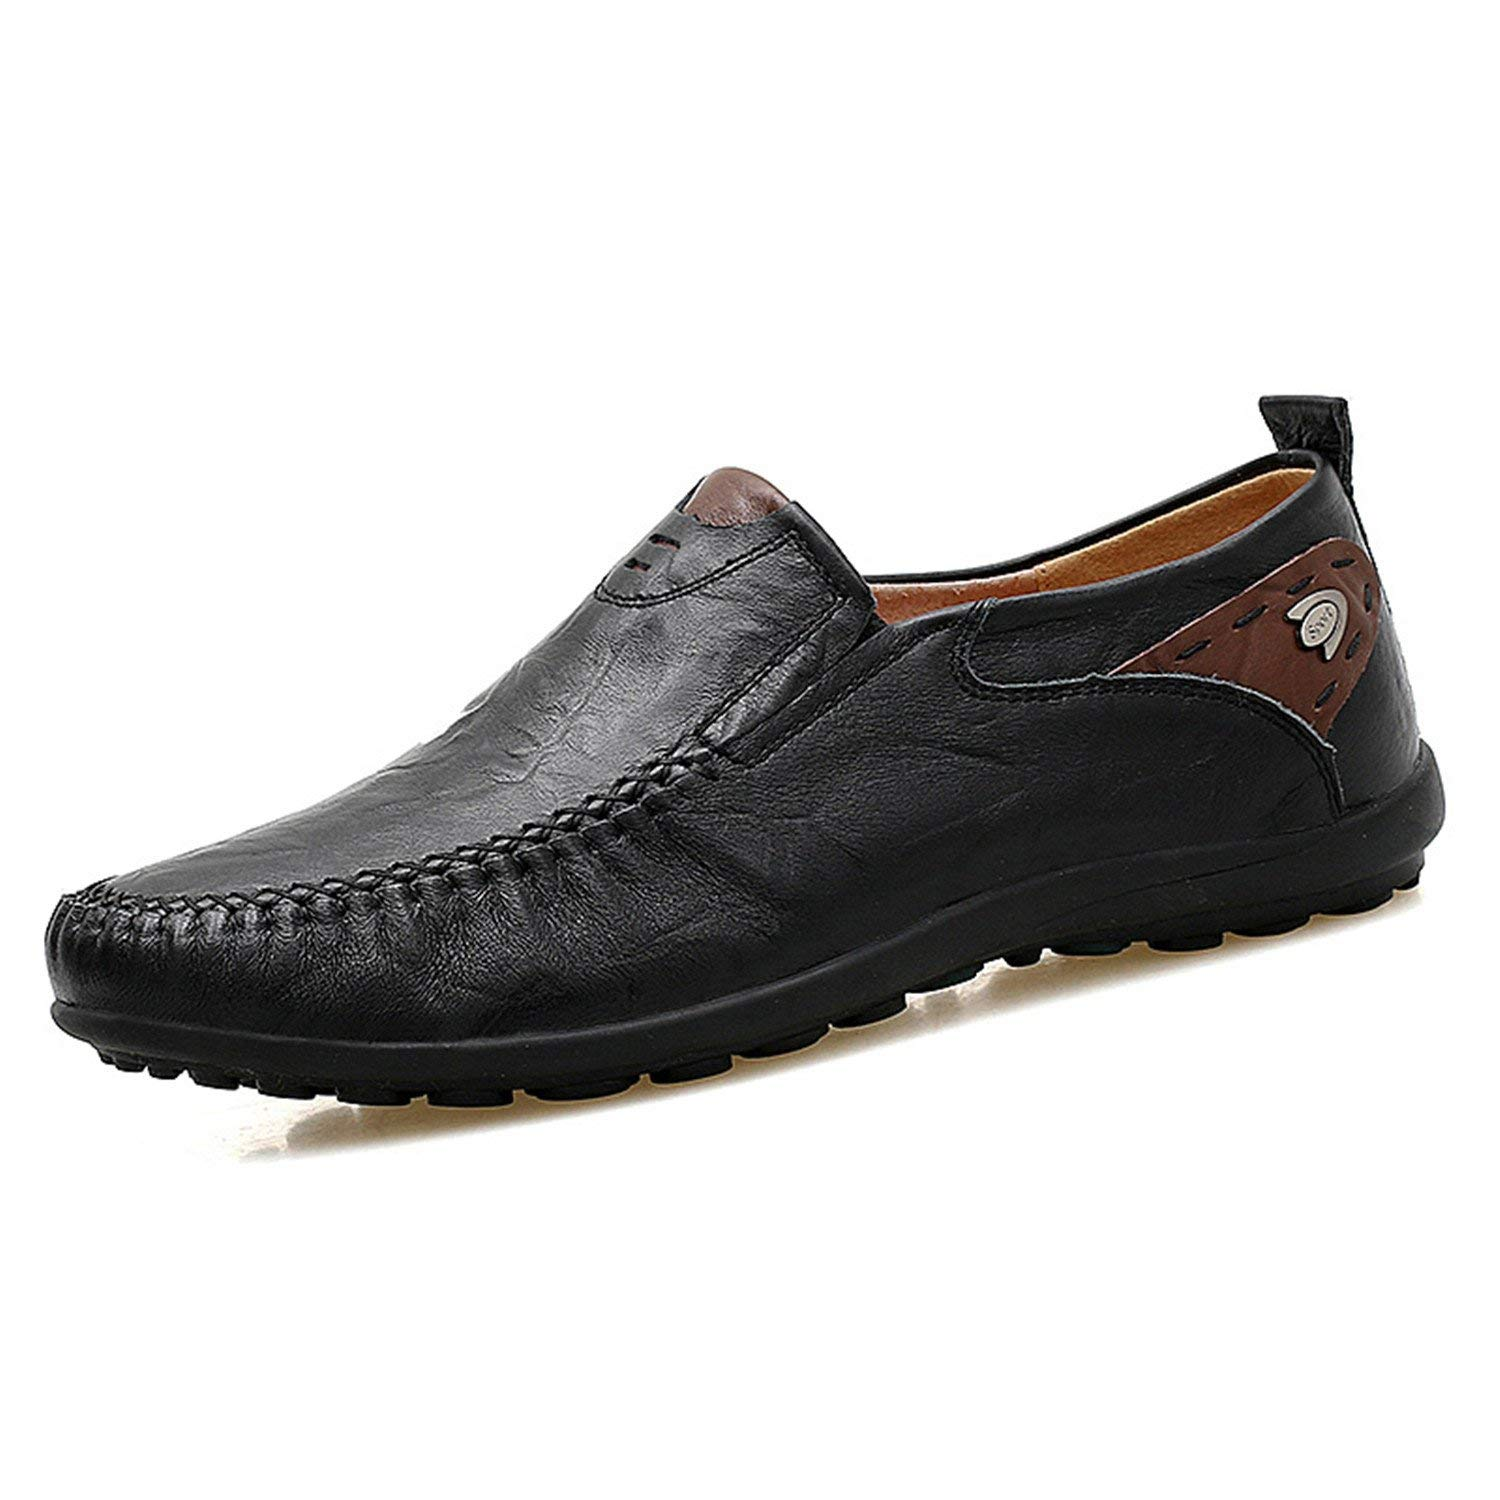 Orcan Bluce Big Size 38-47 Split Leather Men Casual Shoes Fashion Driving Slip on Loafers Flat Shoes